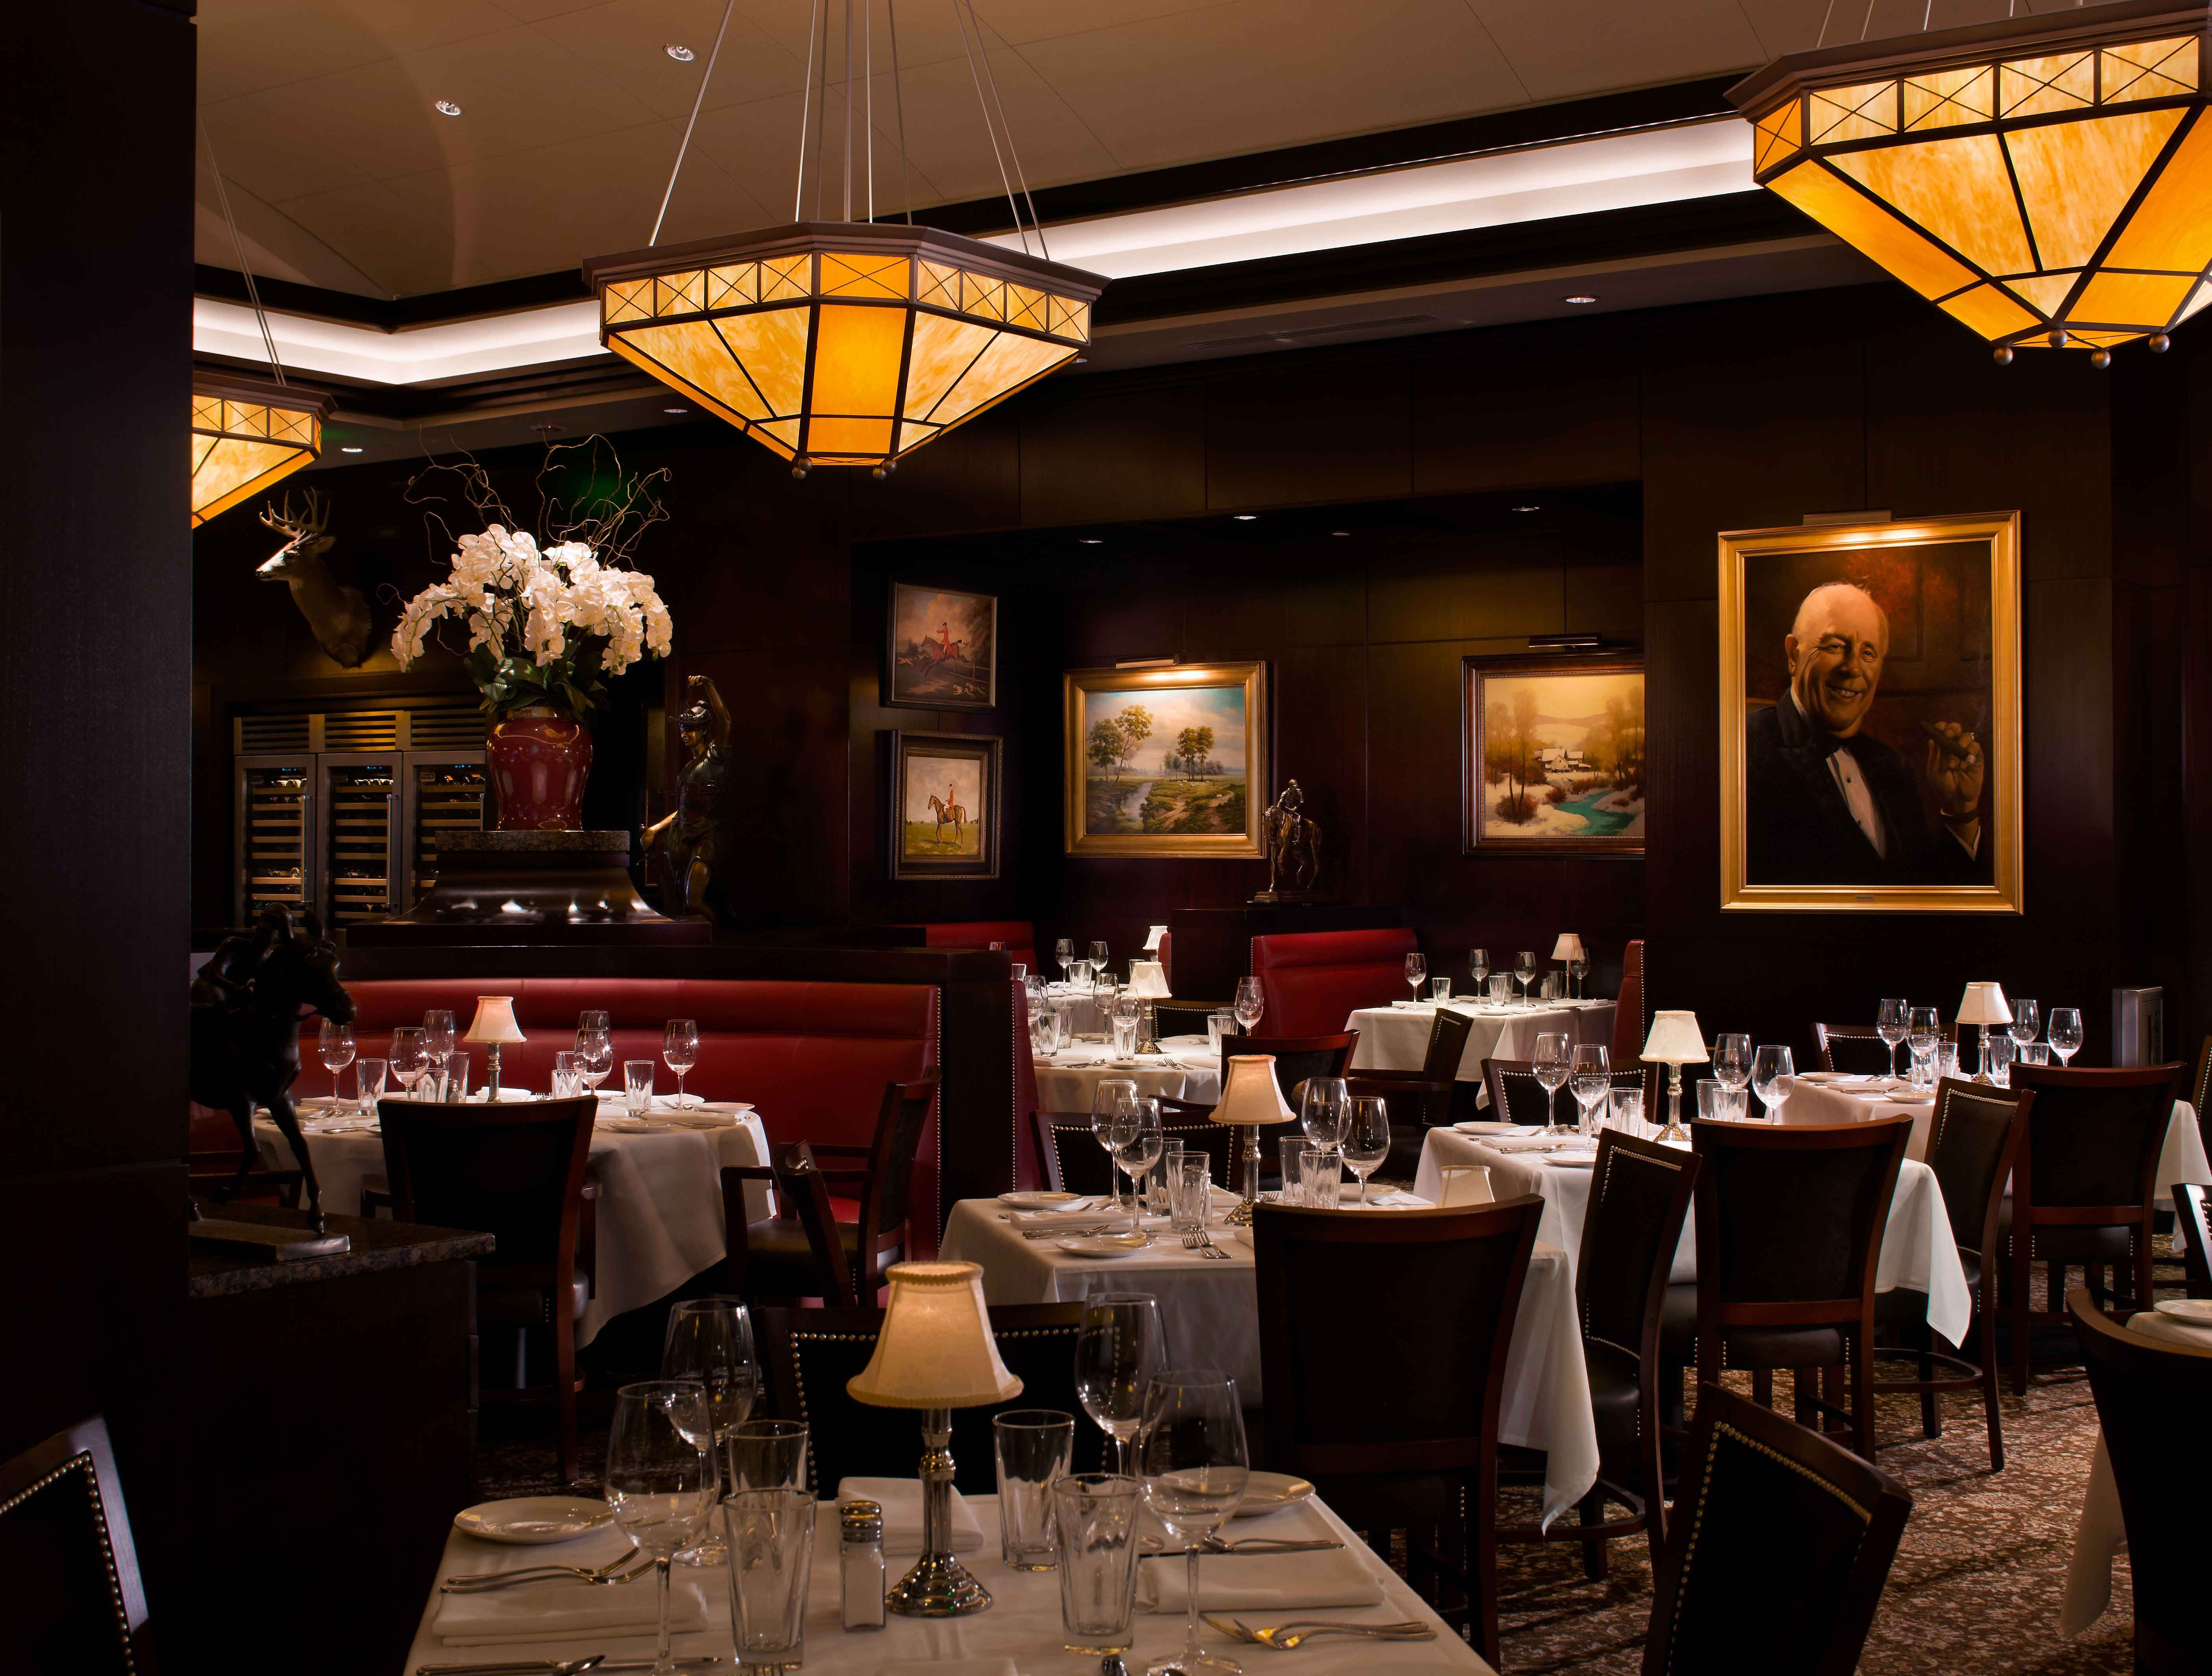 Of Boston From The Bar The Bar And Lounge The Capital Grille Amazing Private Dining Rooms Boston Review